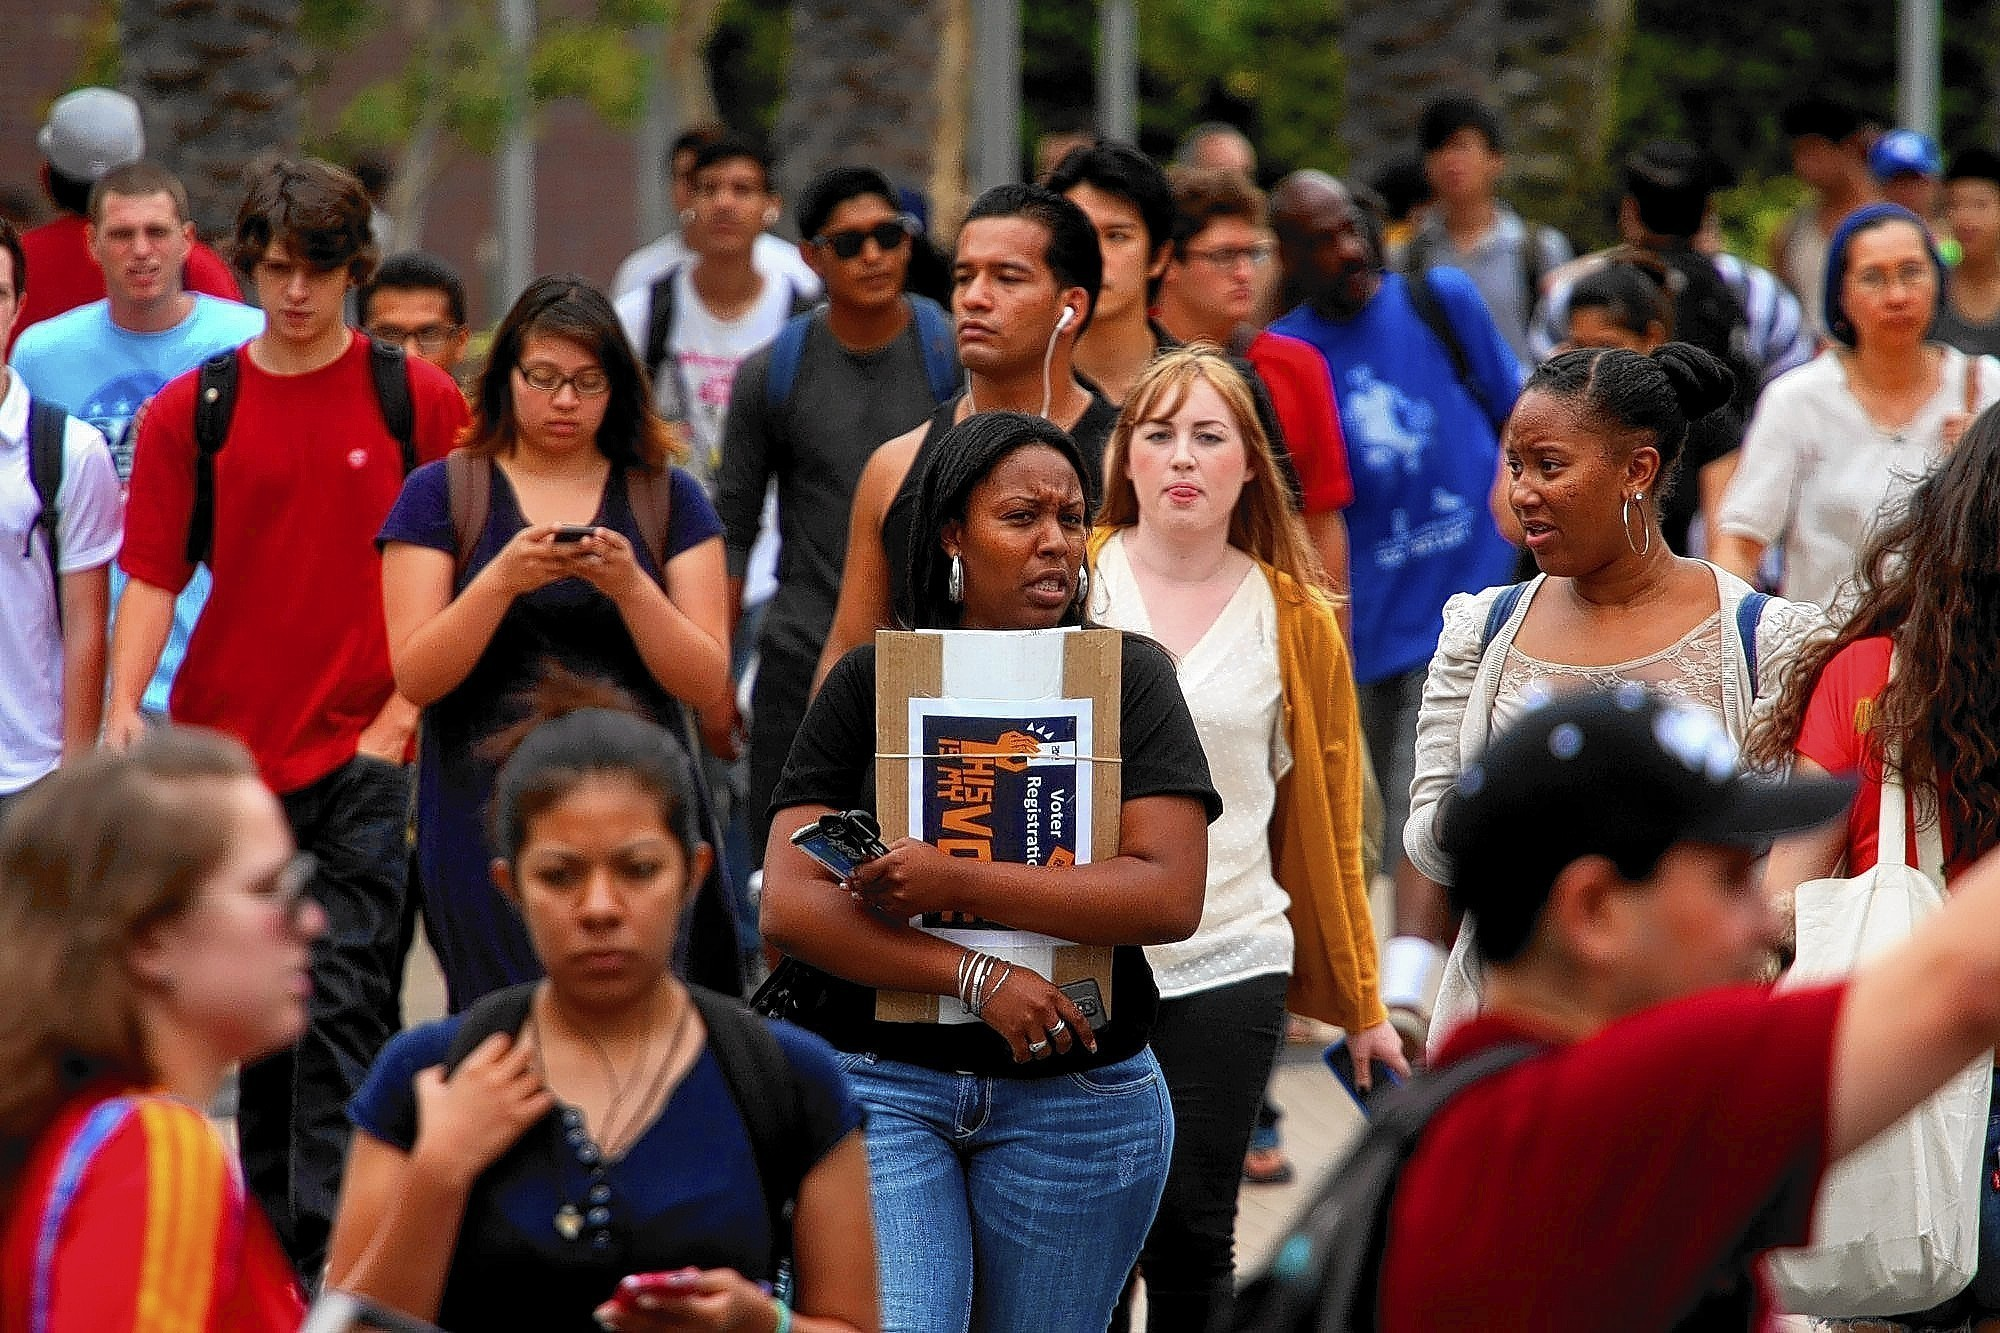 Uc seeks to increase transfer students from community colleges la times